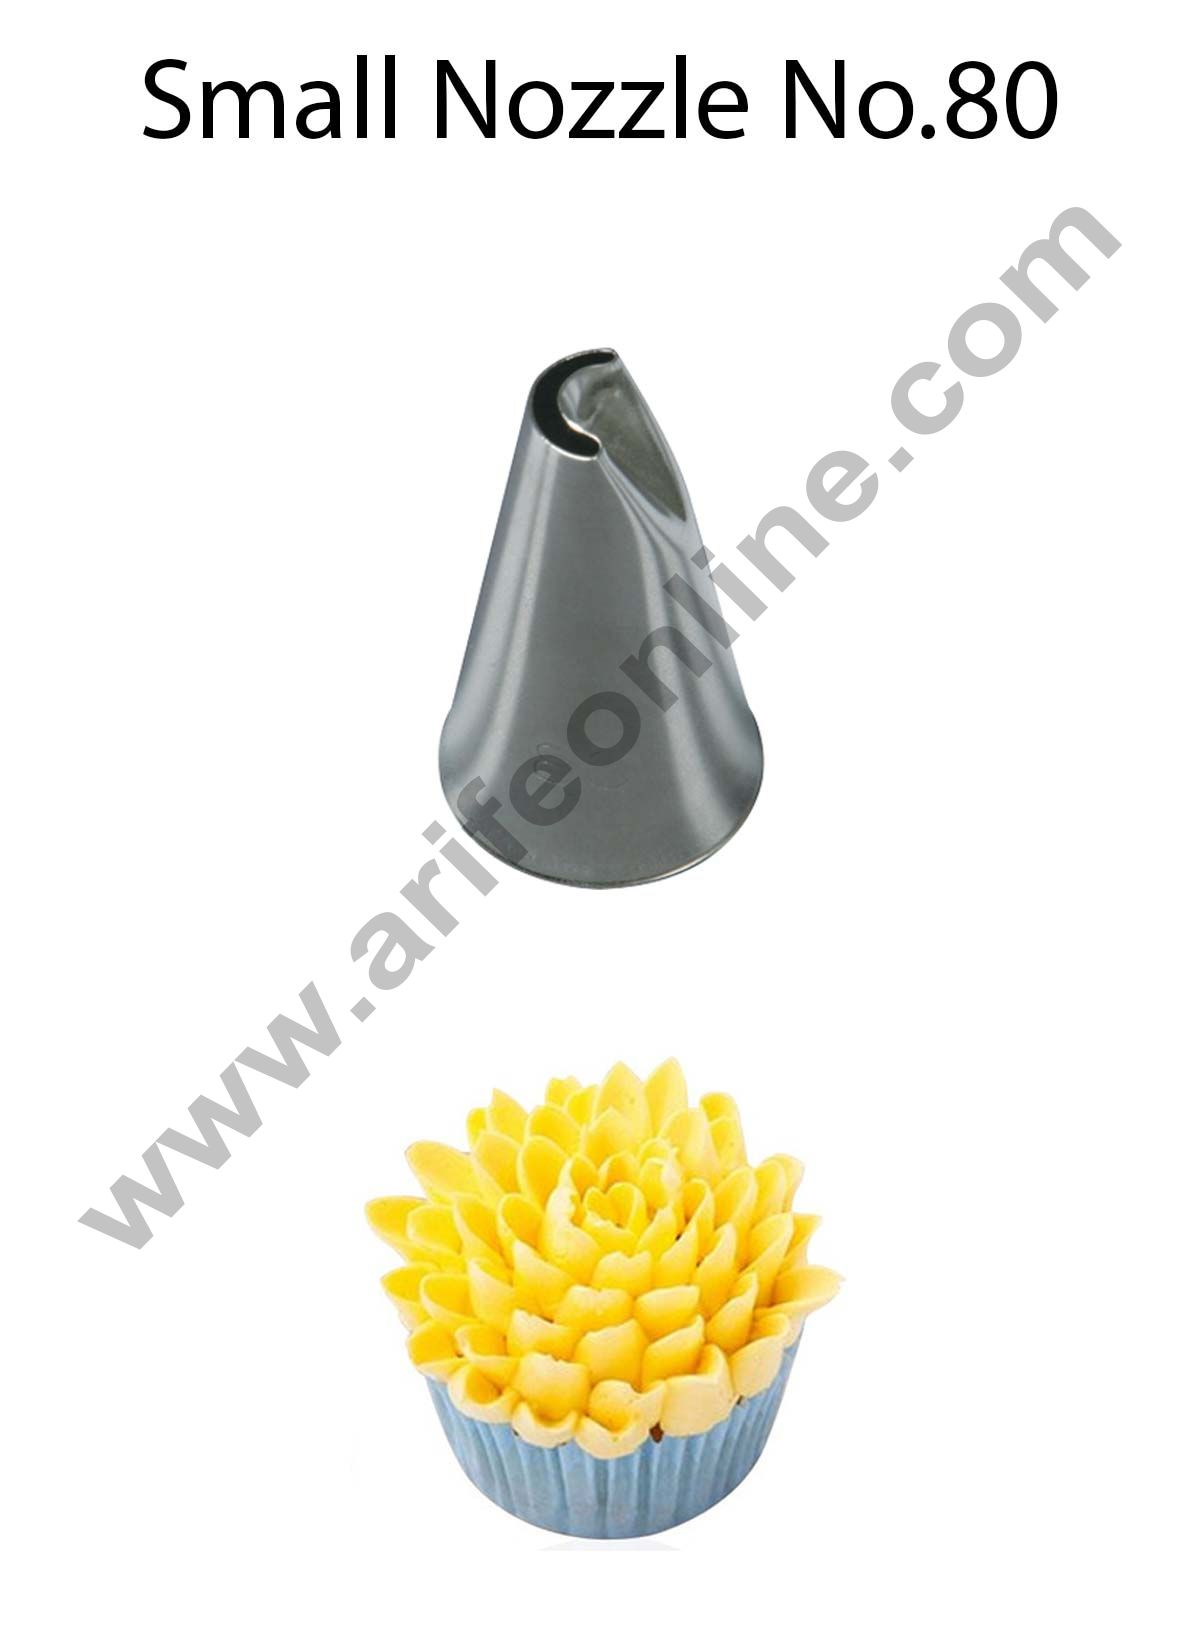 Cake Decor Small Nozzle - No. 80 Specialty Piping Nozzle